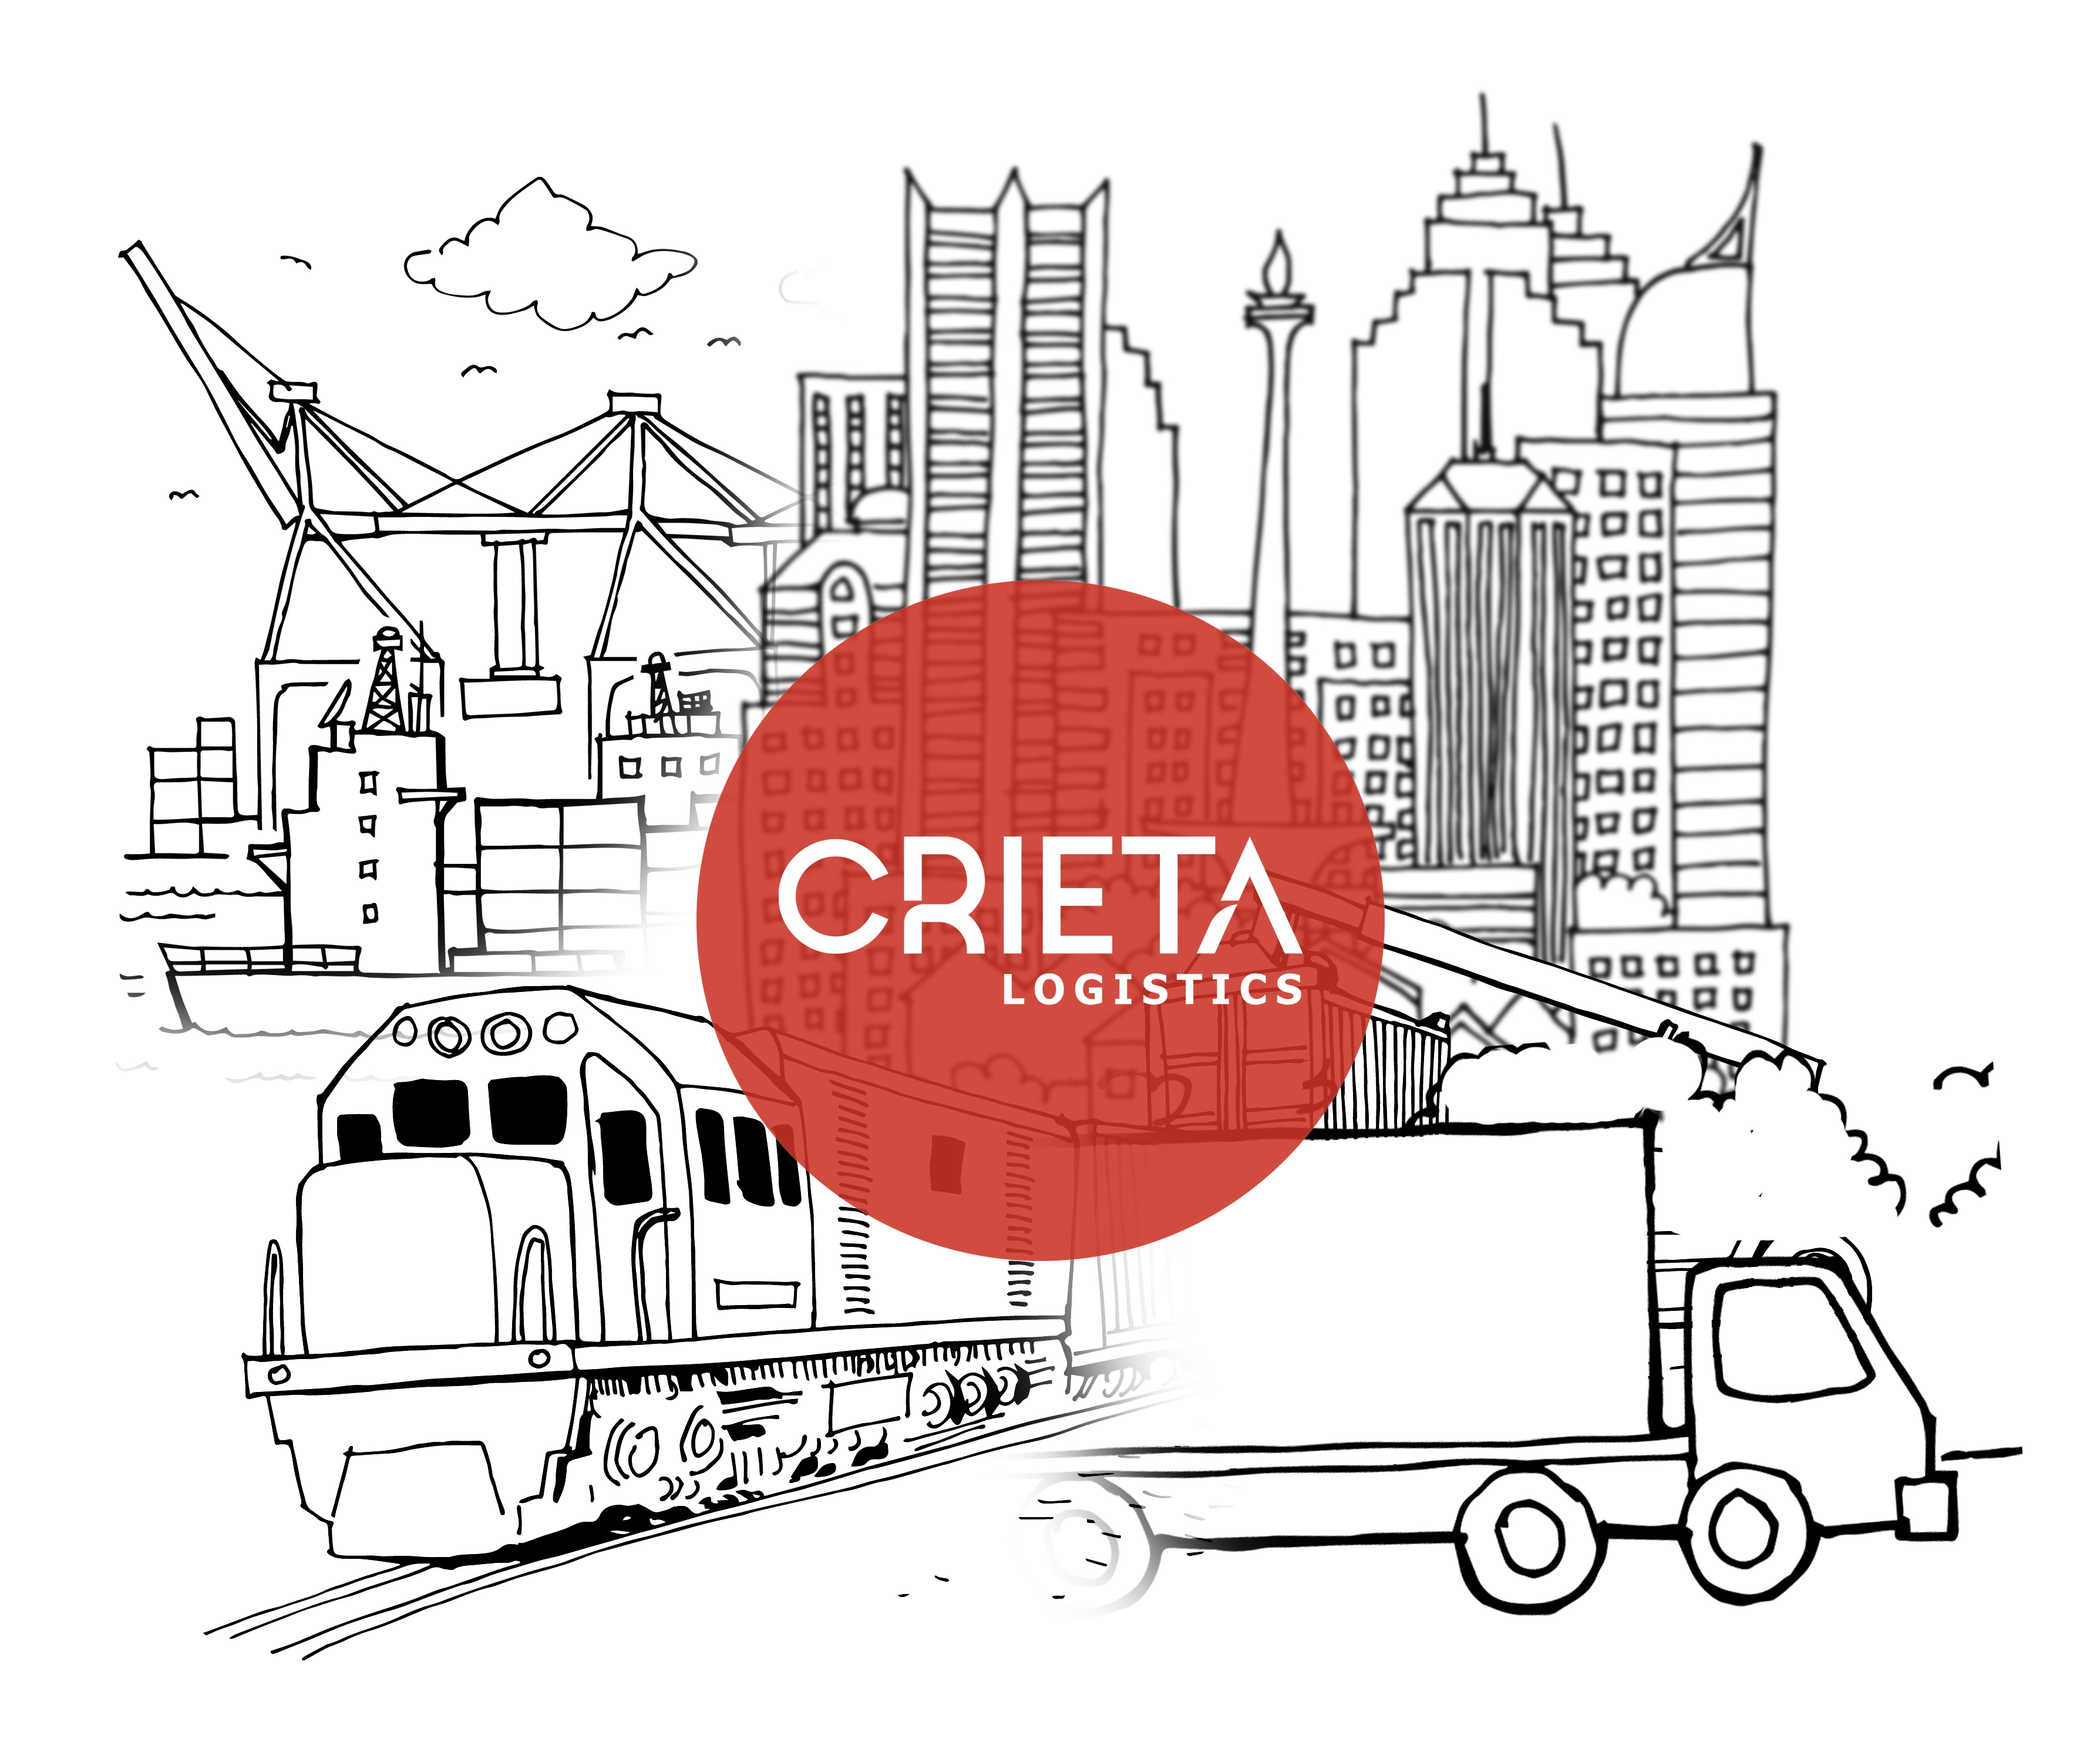 crieta logistik domestik indonesia